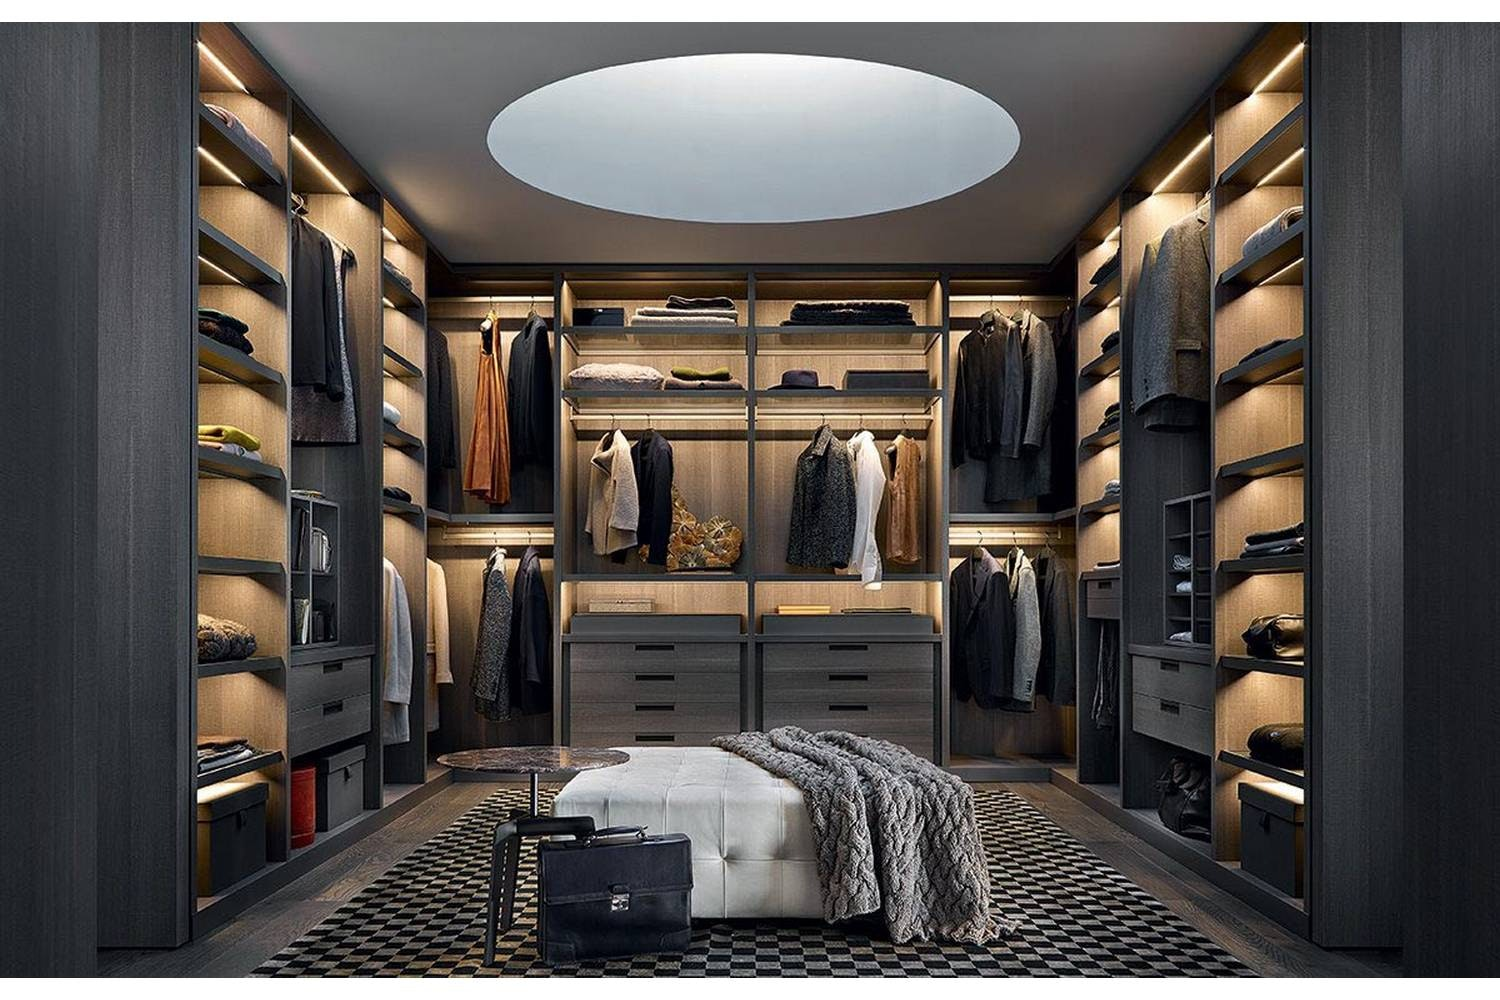 Senzafine Walk-In Closet by CR&S Poliform for Poliform